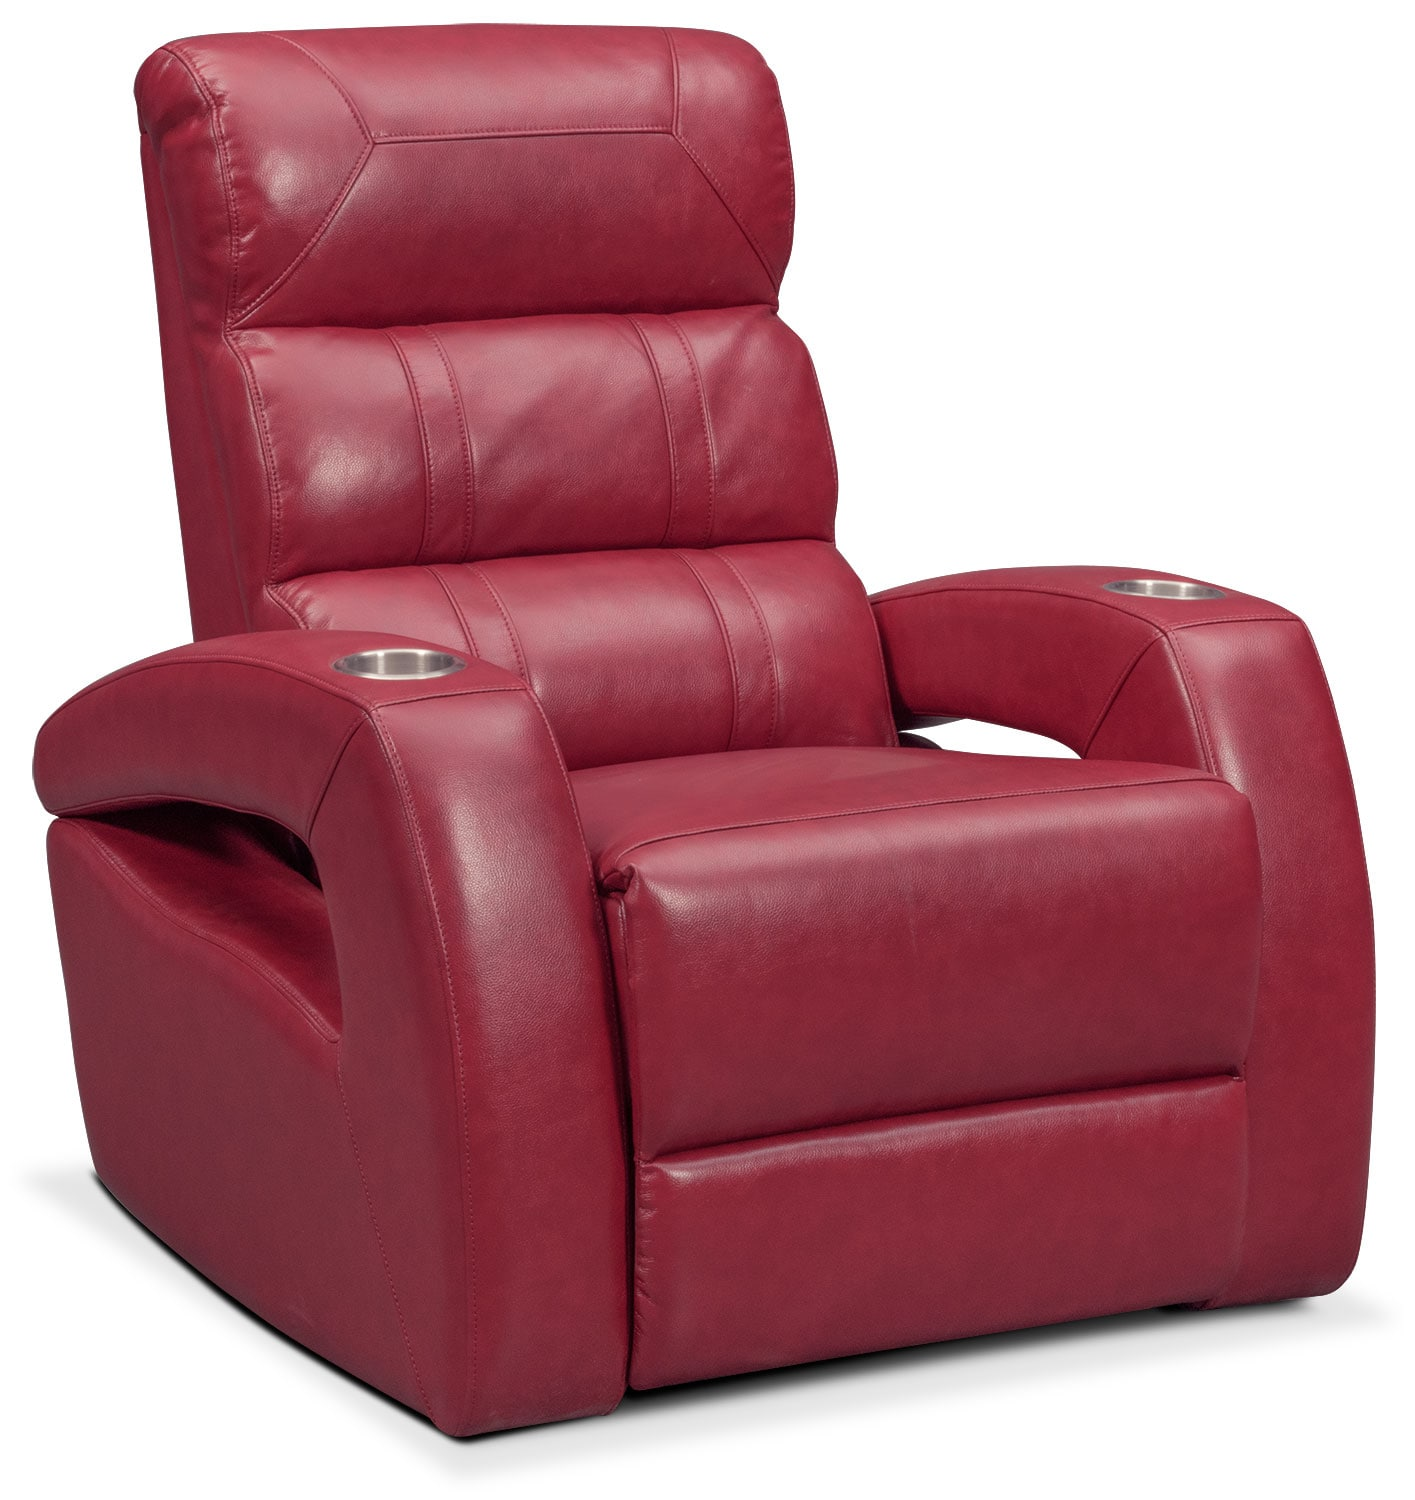 Bravo Power Recliner - Red by One80  sc 1 st  Value City Furniture & Bravo Power Recliner - Red | Value City Furniture islam-shia.org